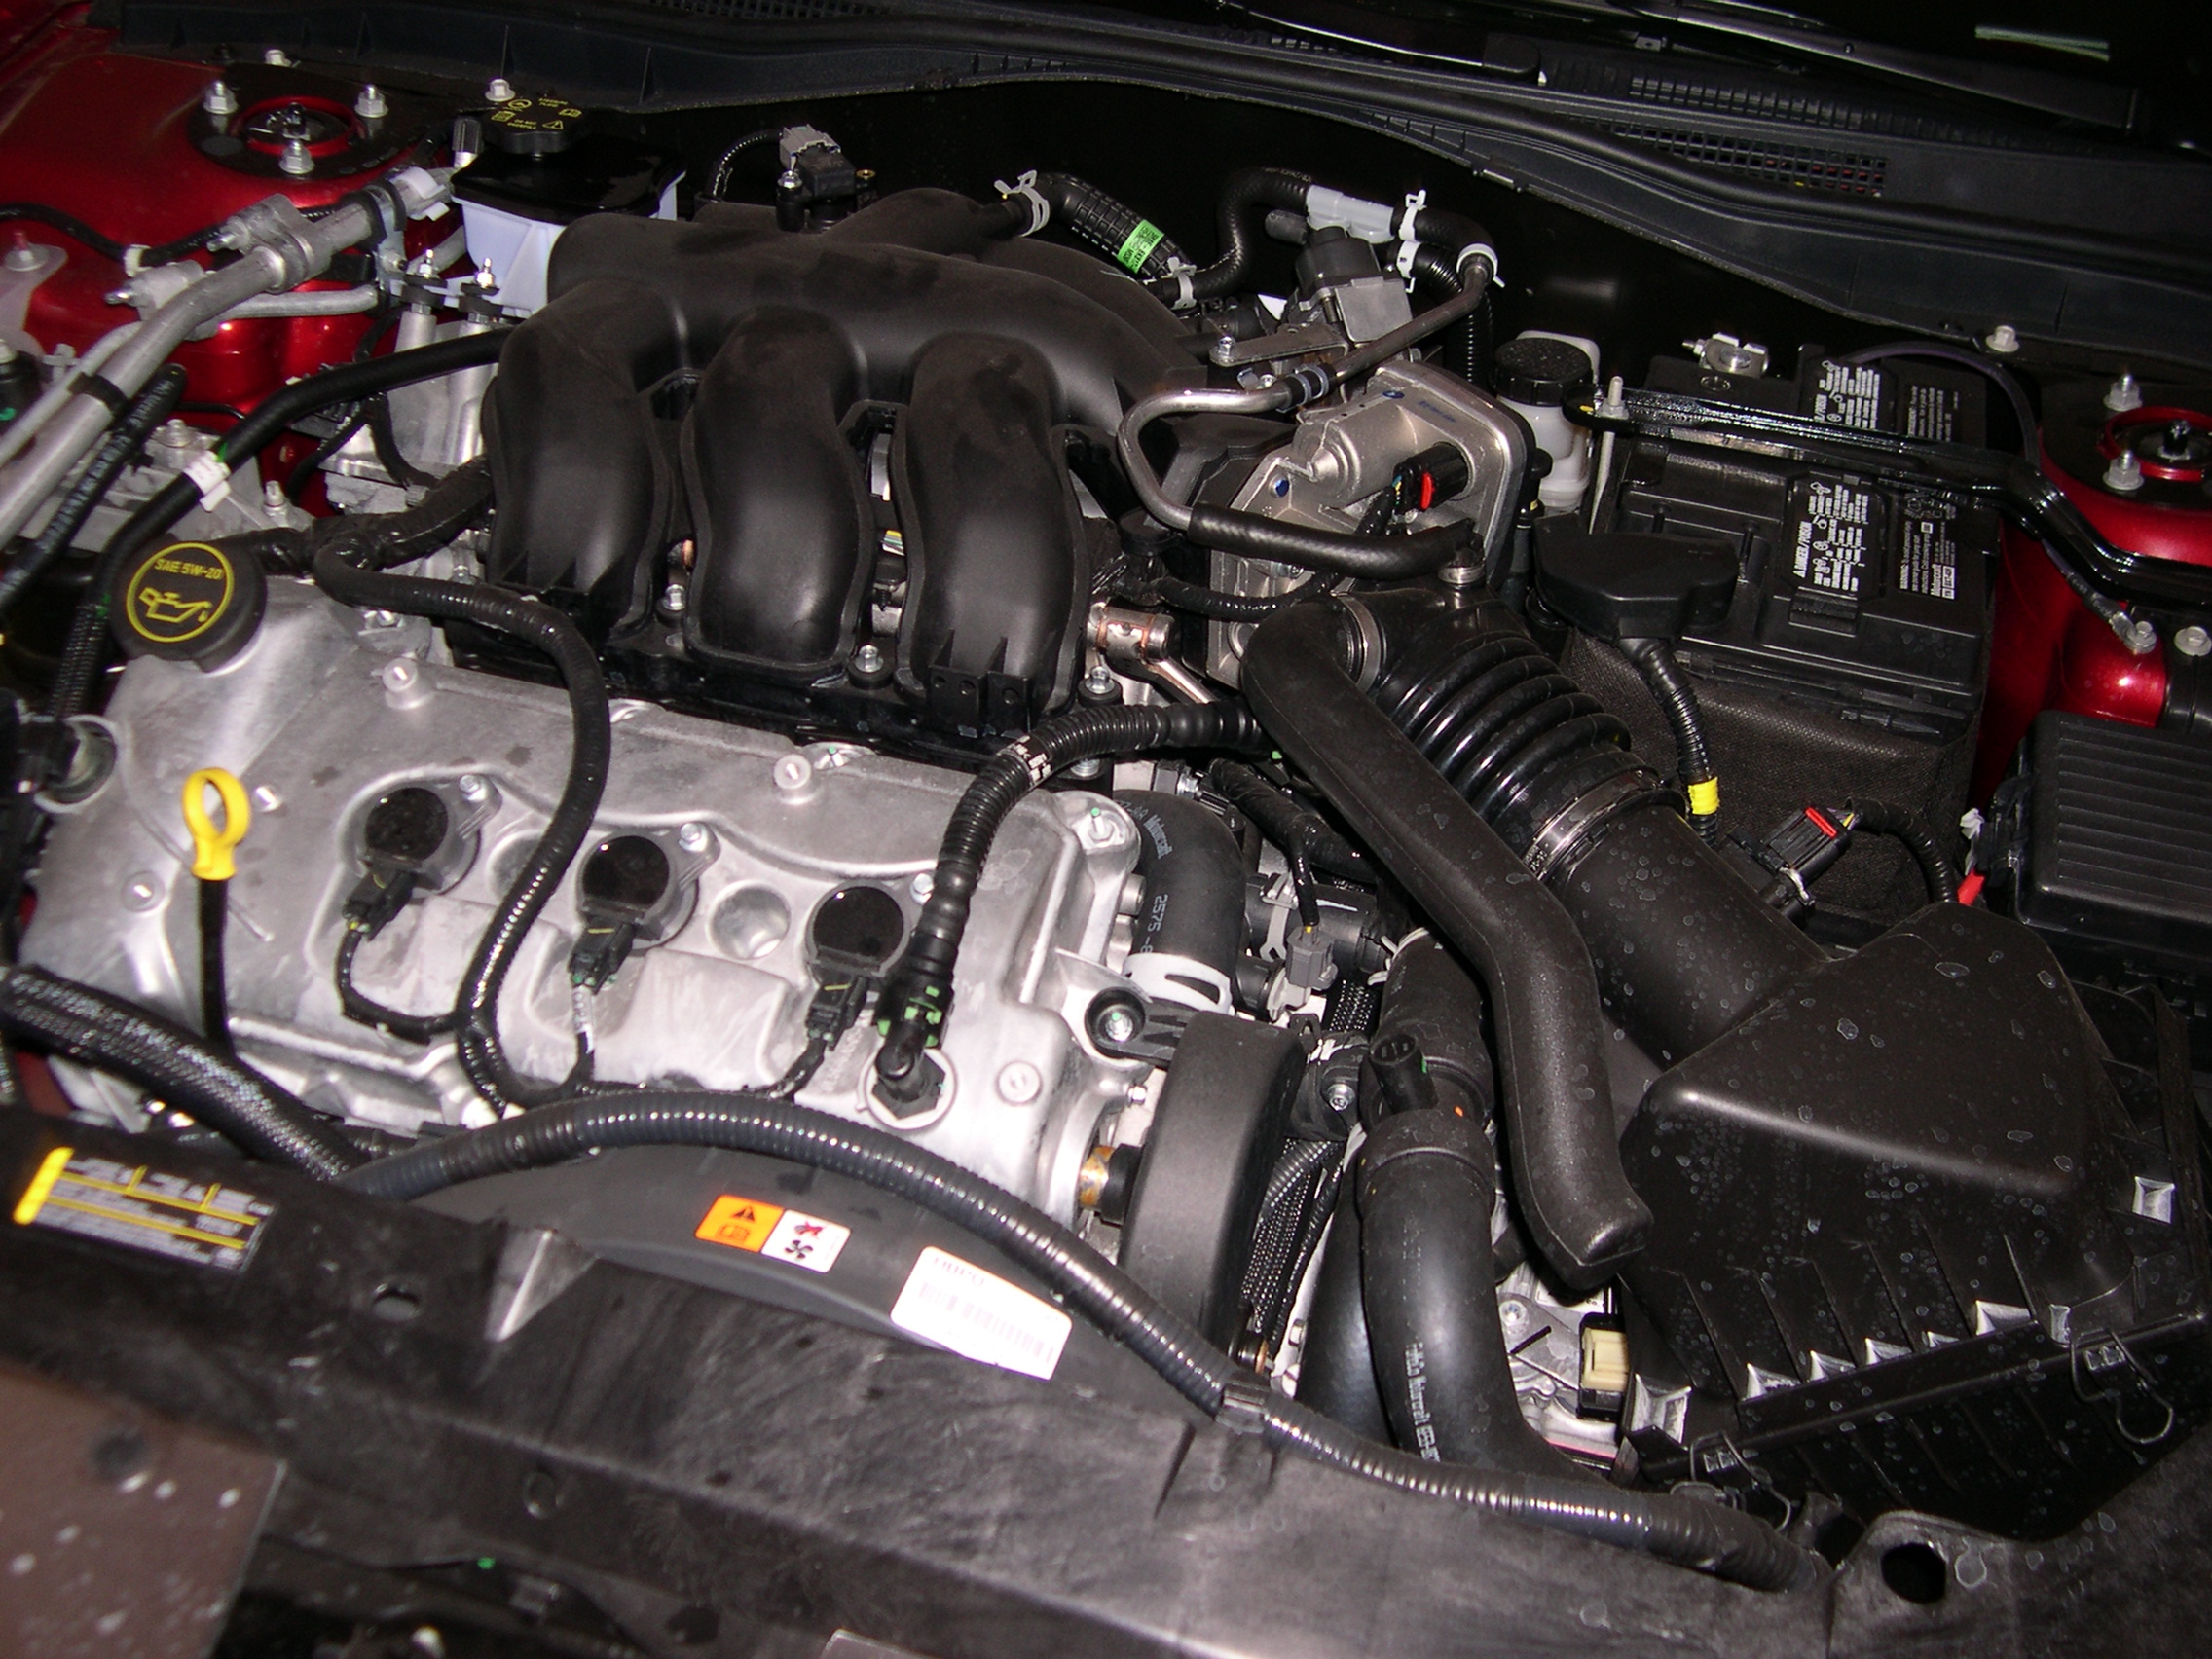 2002 3 0 Engine Diagram Ford V6 Escape Books Of Wiring File 2006 Mercury Milan Duratec 30 Wikimedia Commons Rh Org